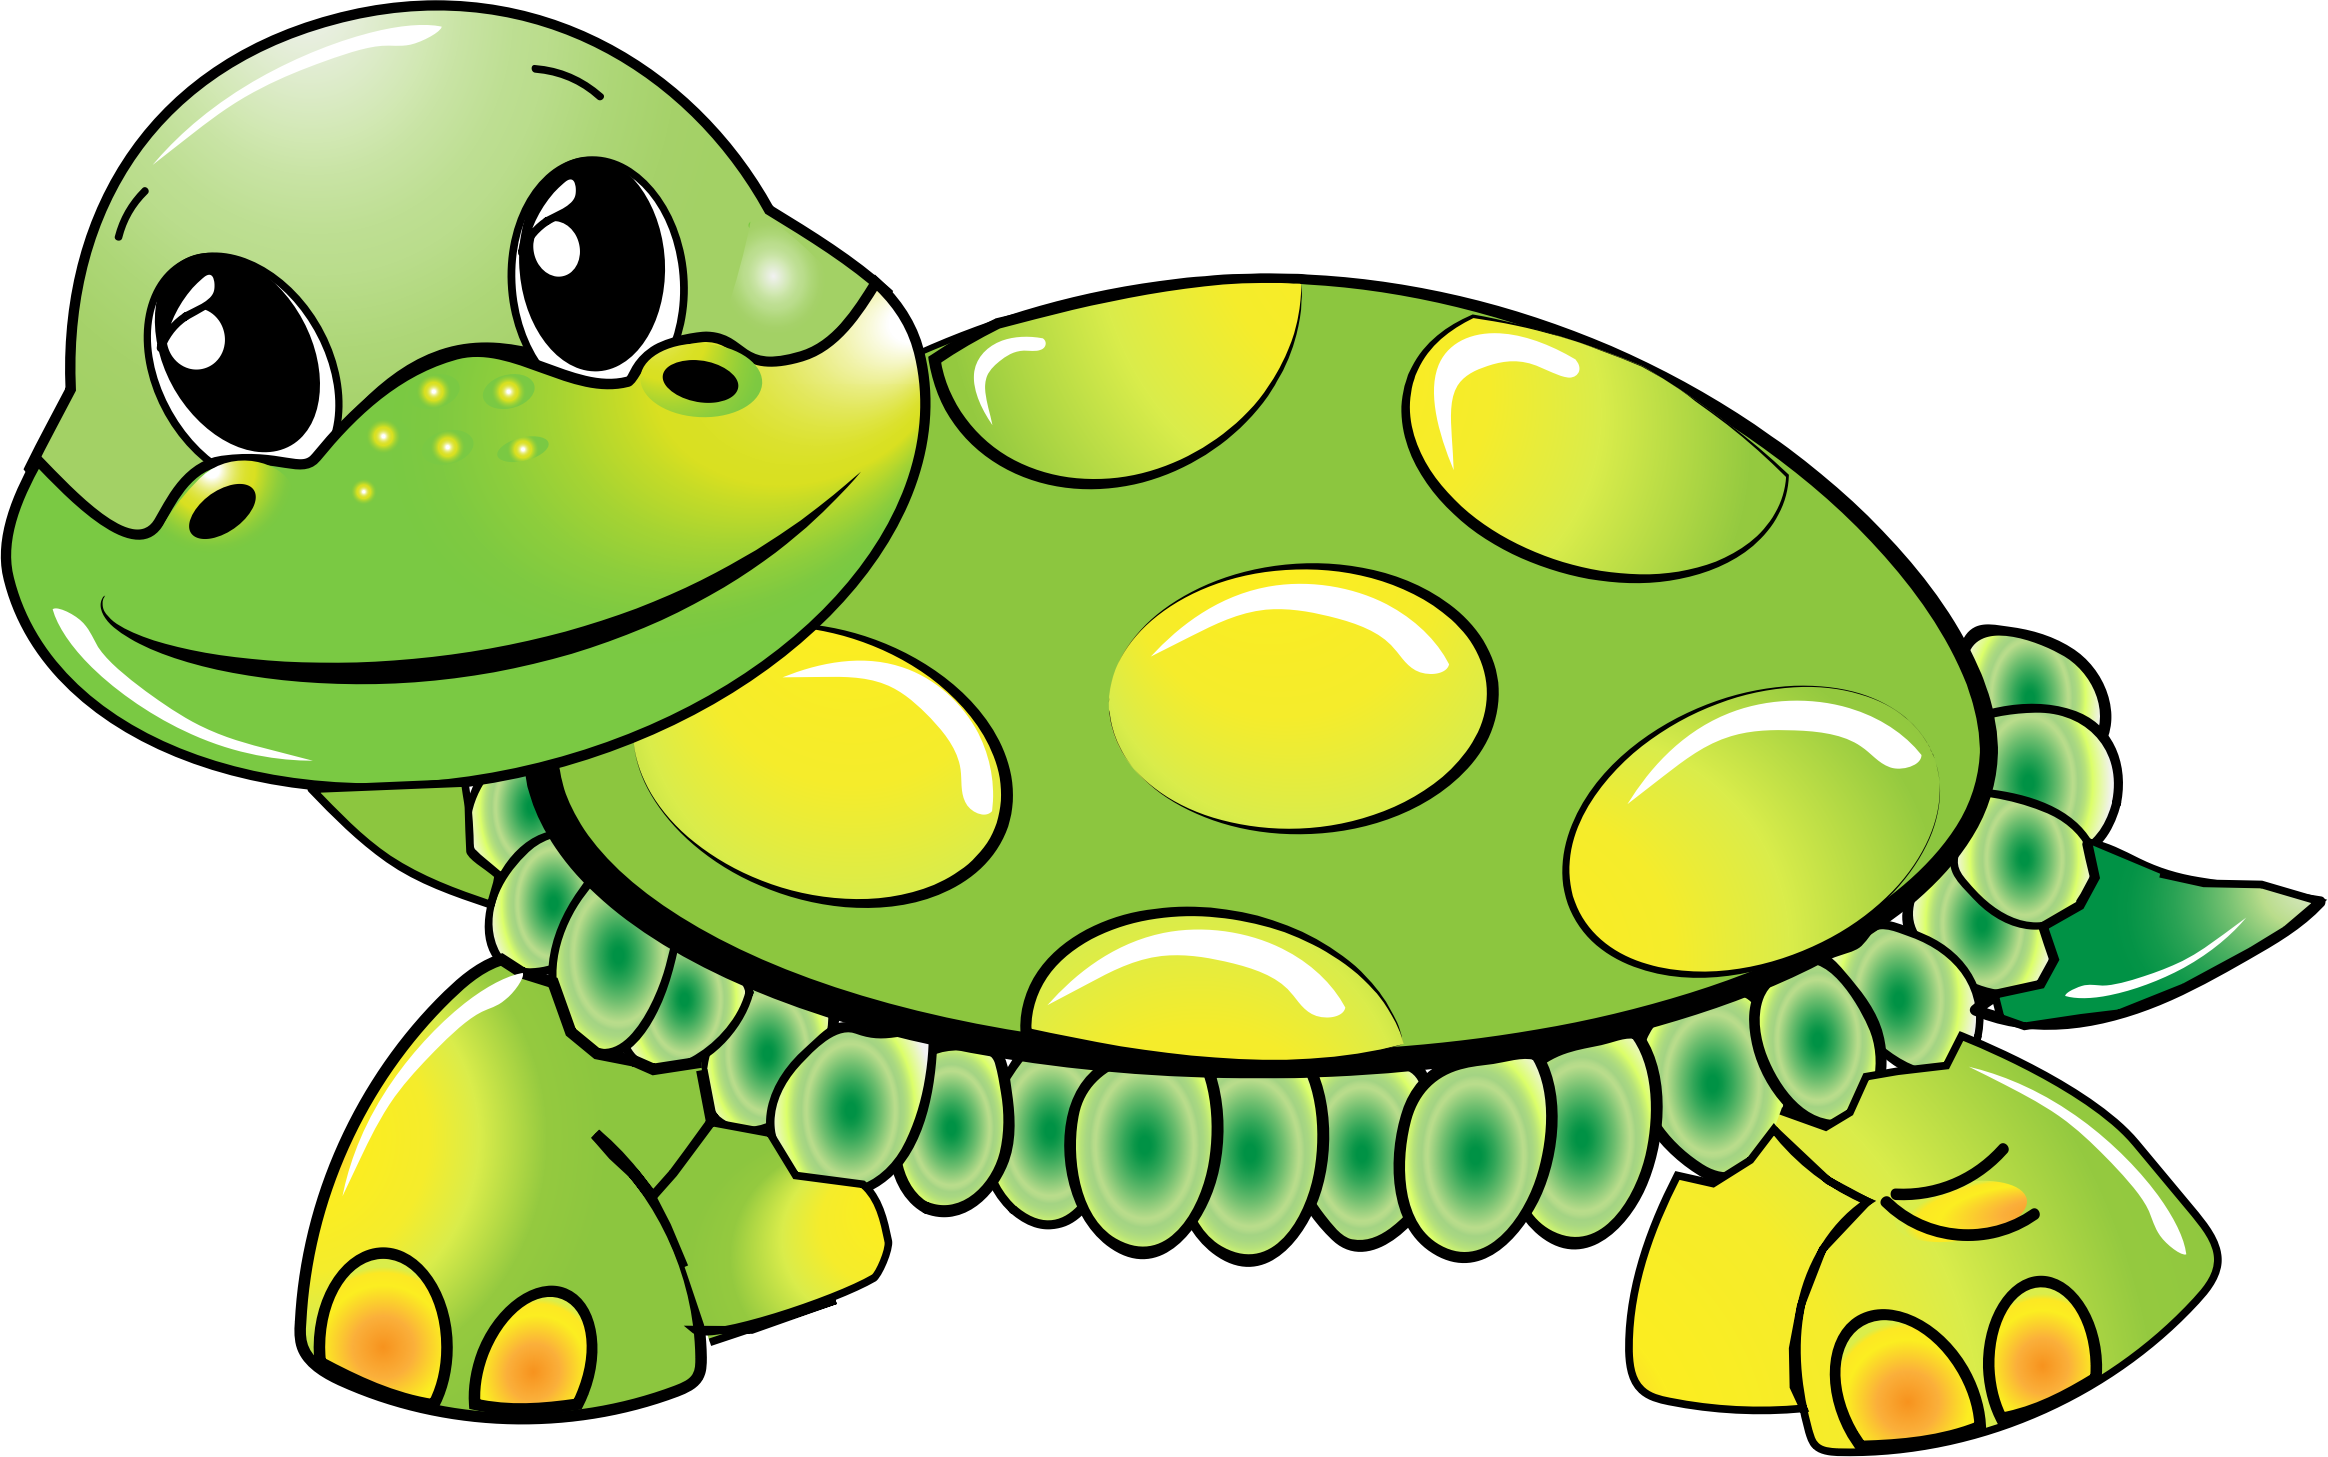 Turtle by a.tauzzi, A cute green turtle., on openclipart